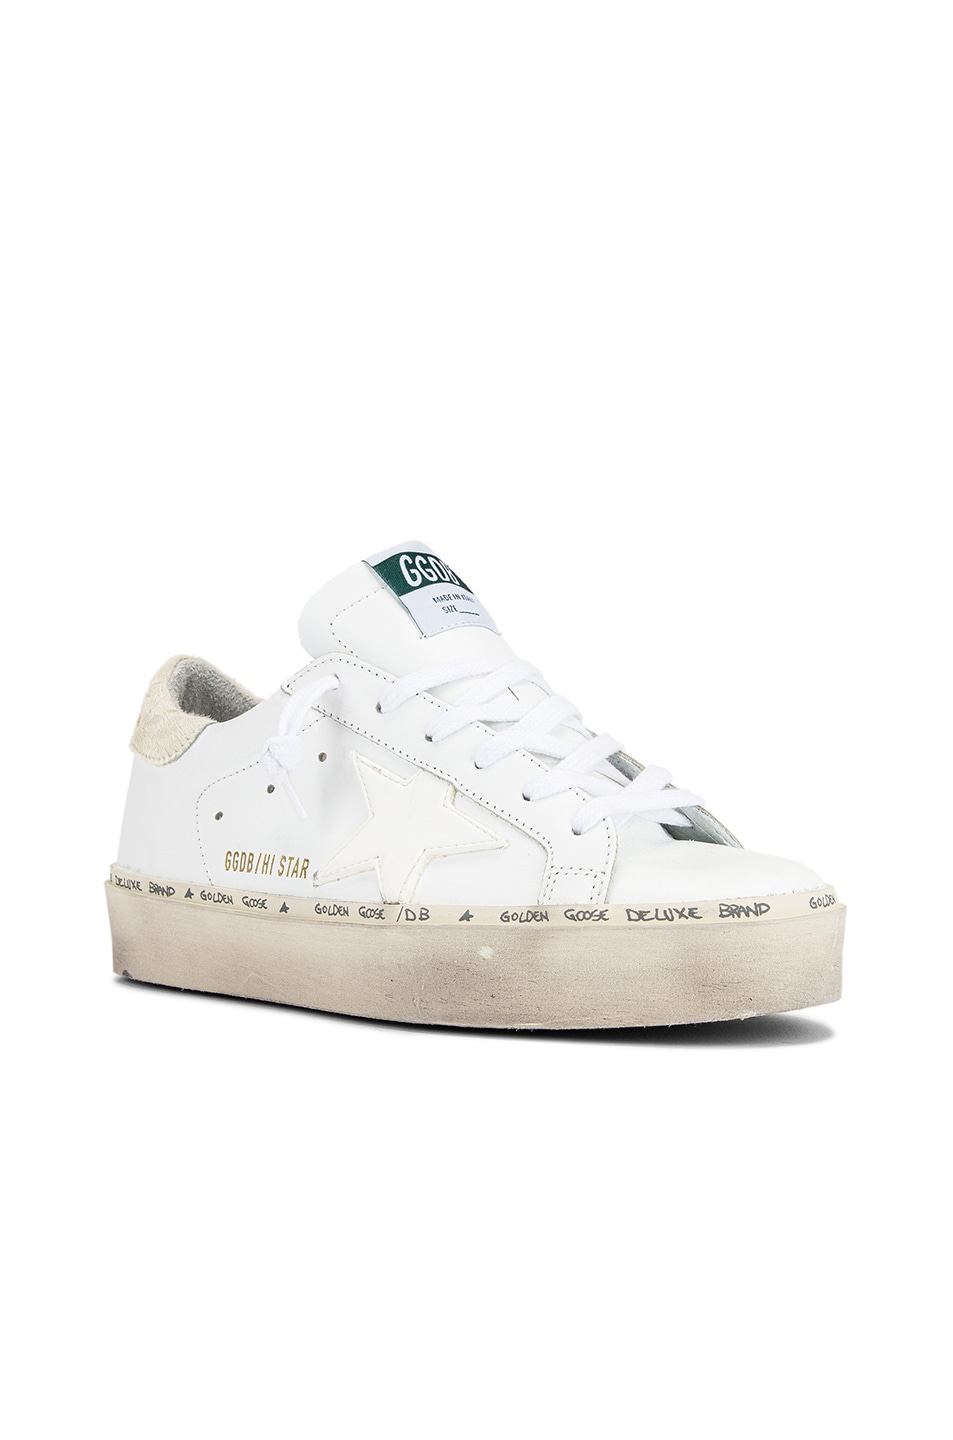 Image 2 of Golden Goose Hi Star Sneaker in White Leather & Carved